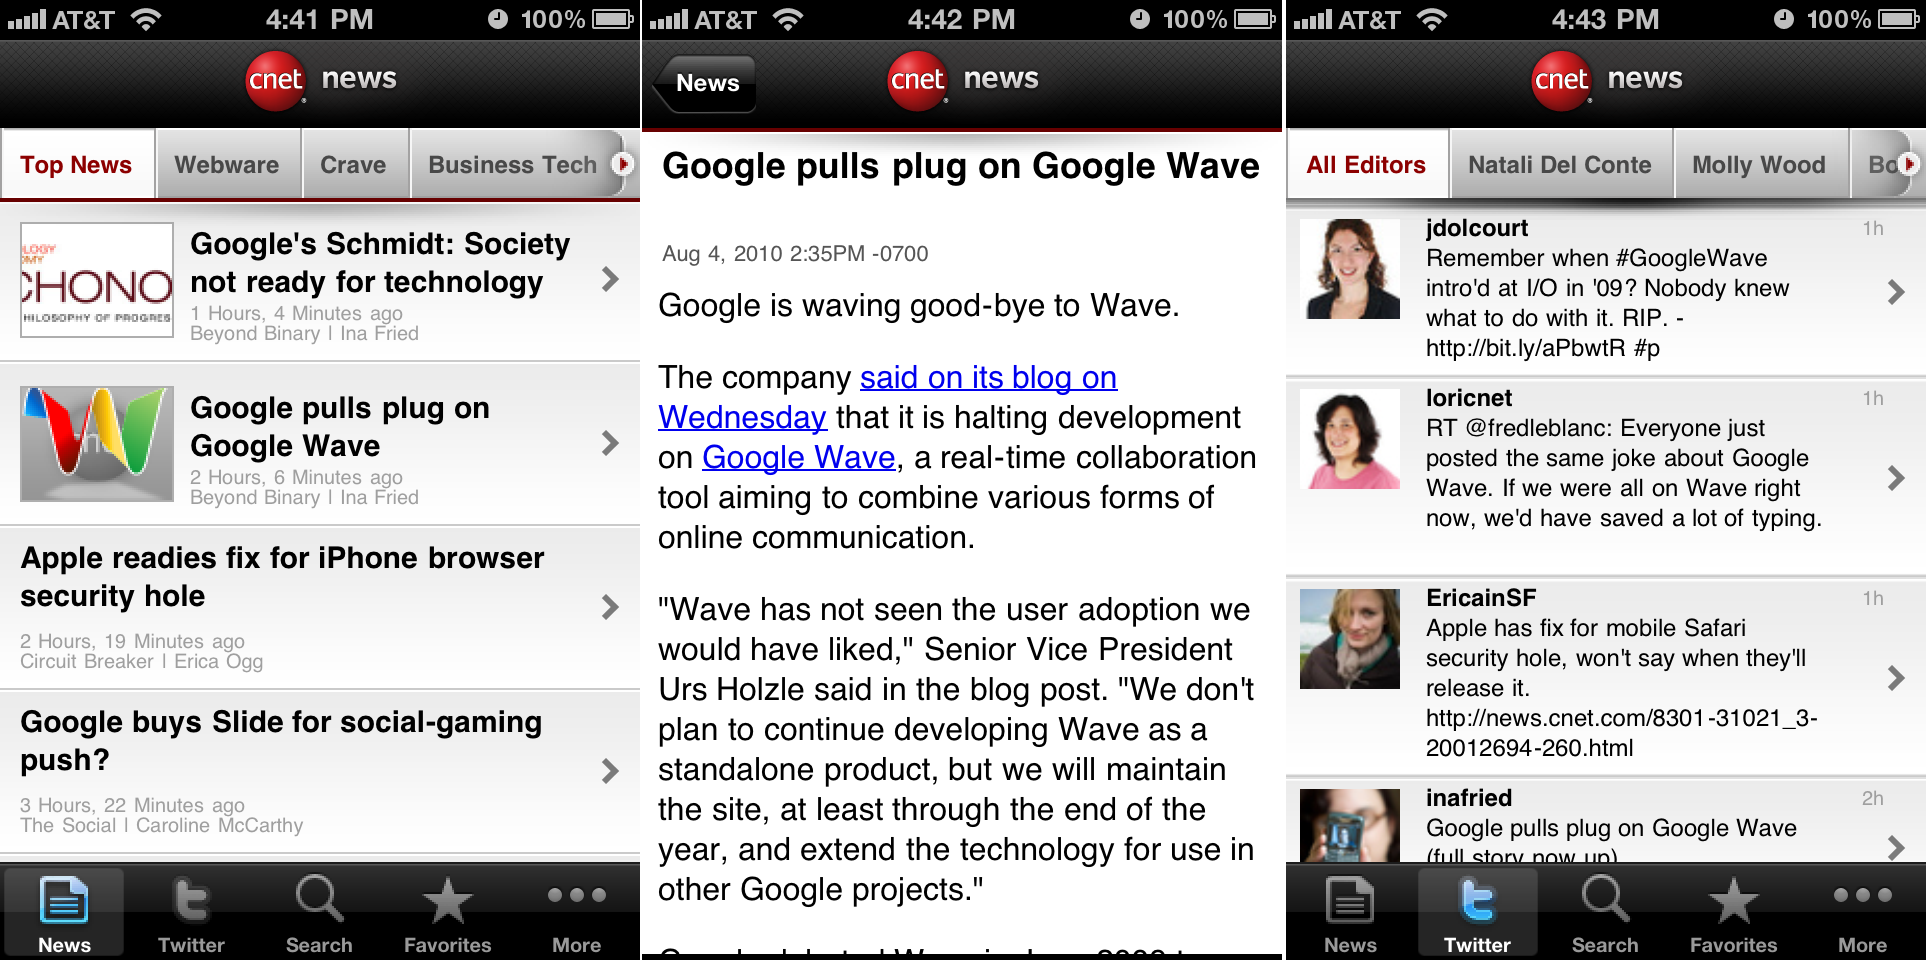 CNET News iPhone app screenshots